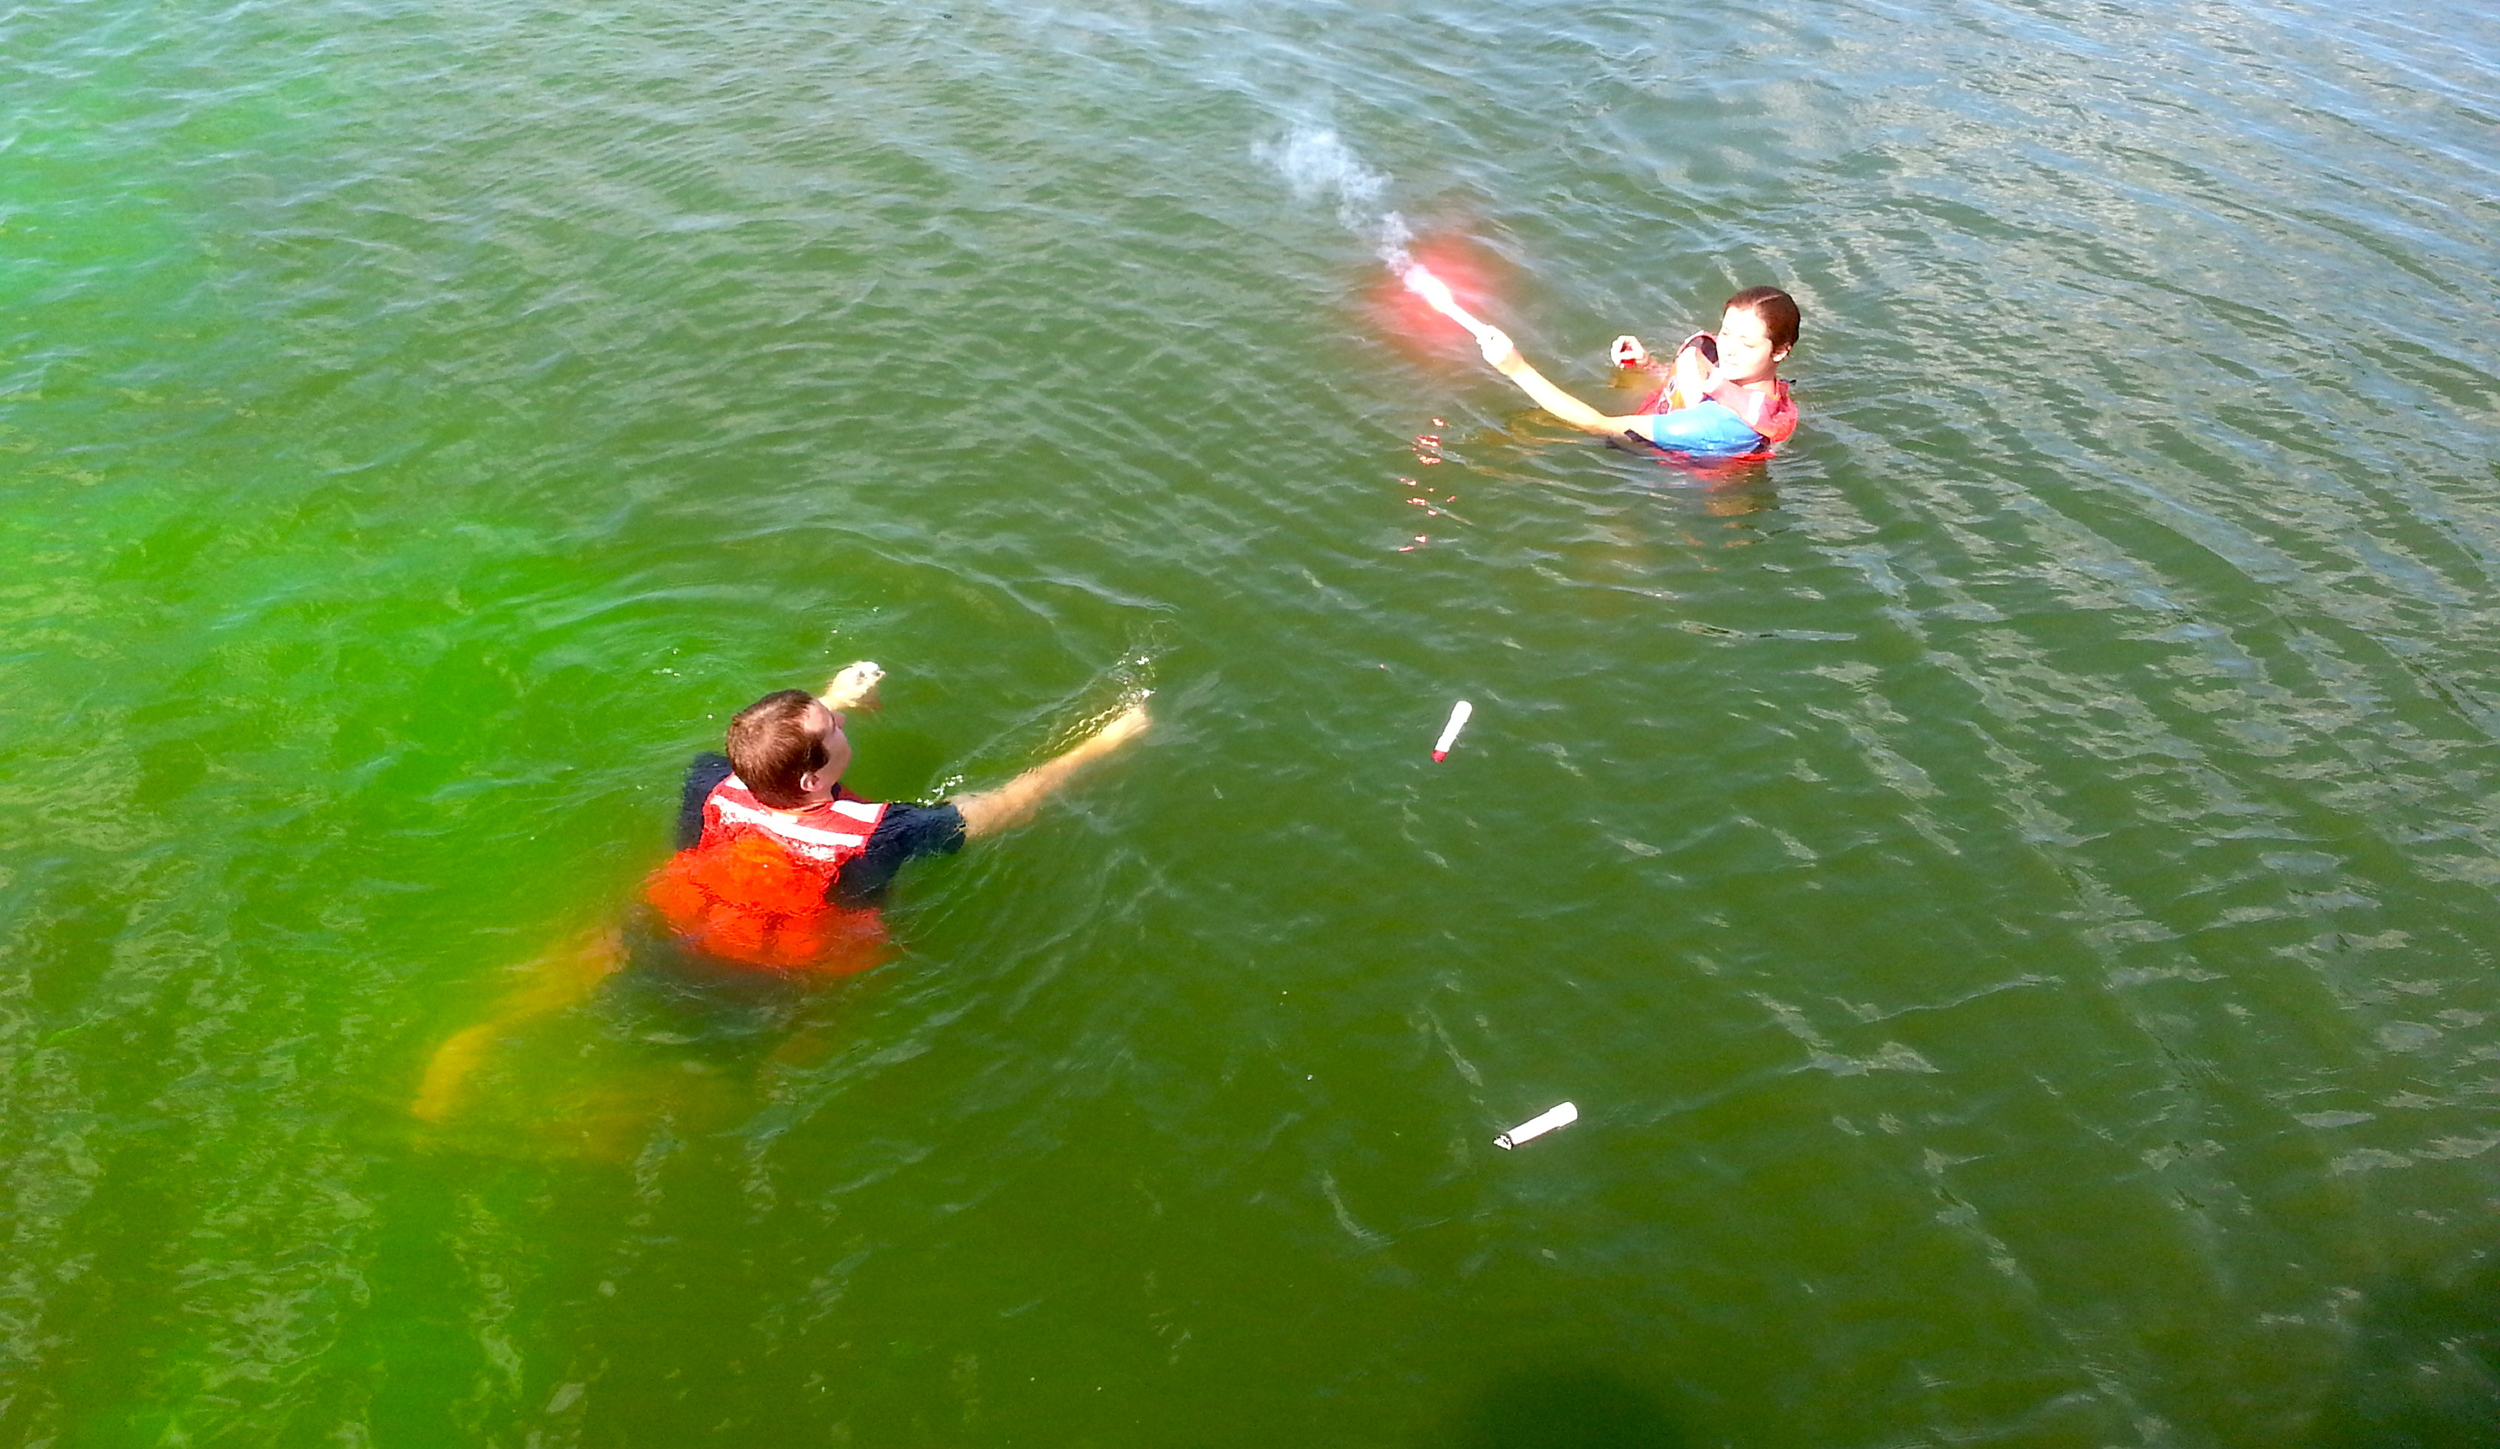 Wingler, on right, participates in a flare and dye marker exercise at Coast Guard Station Milford Haven, Va. U.S. Coast Guard photo by auxiliarist Stephanie Hutton.